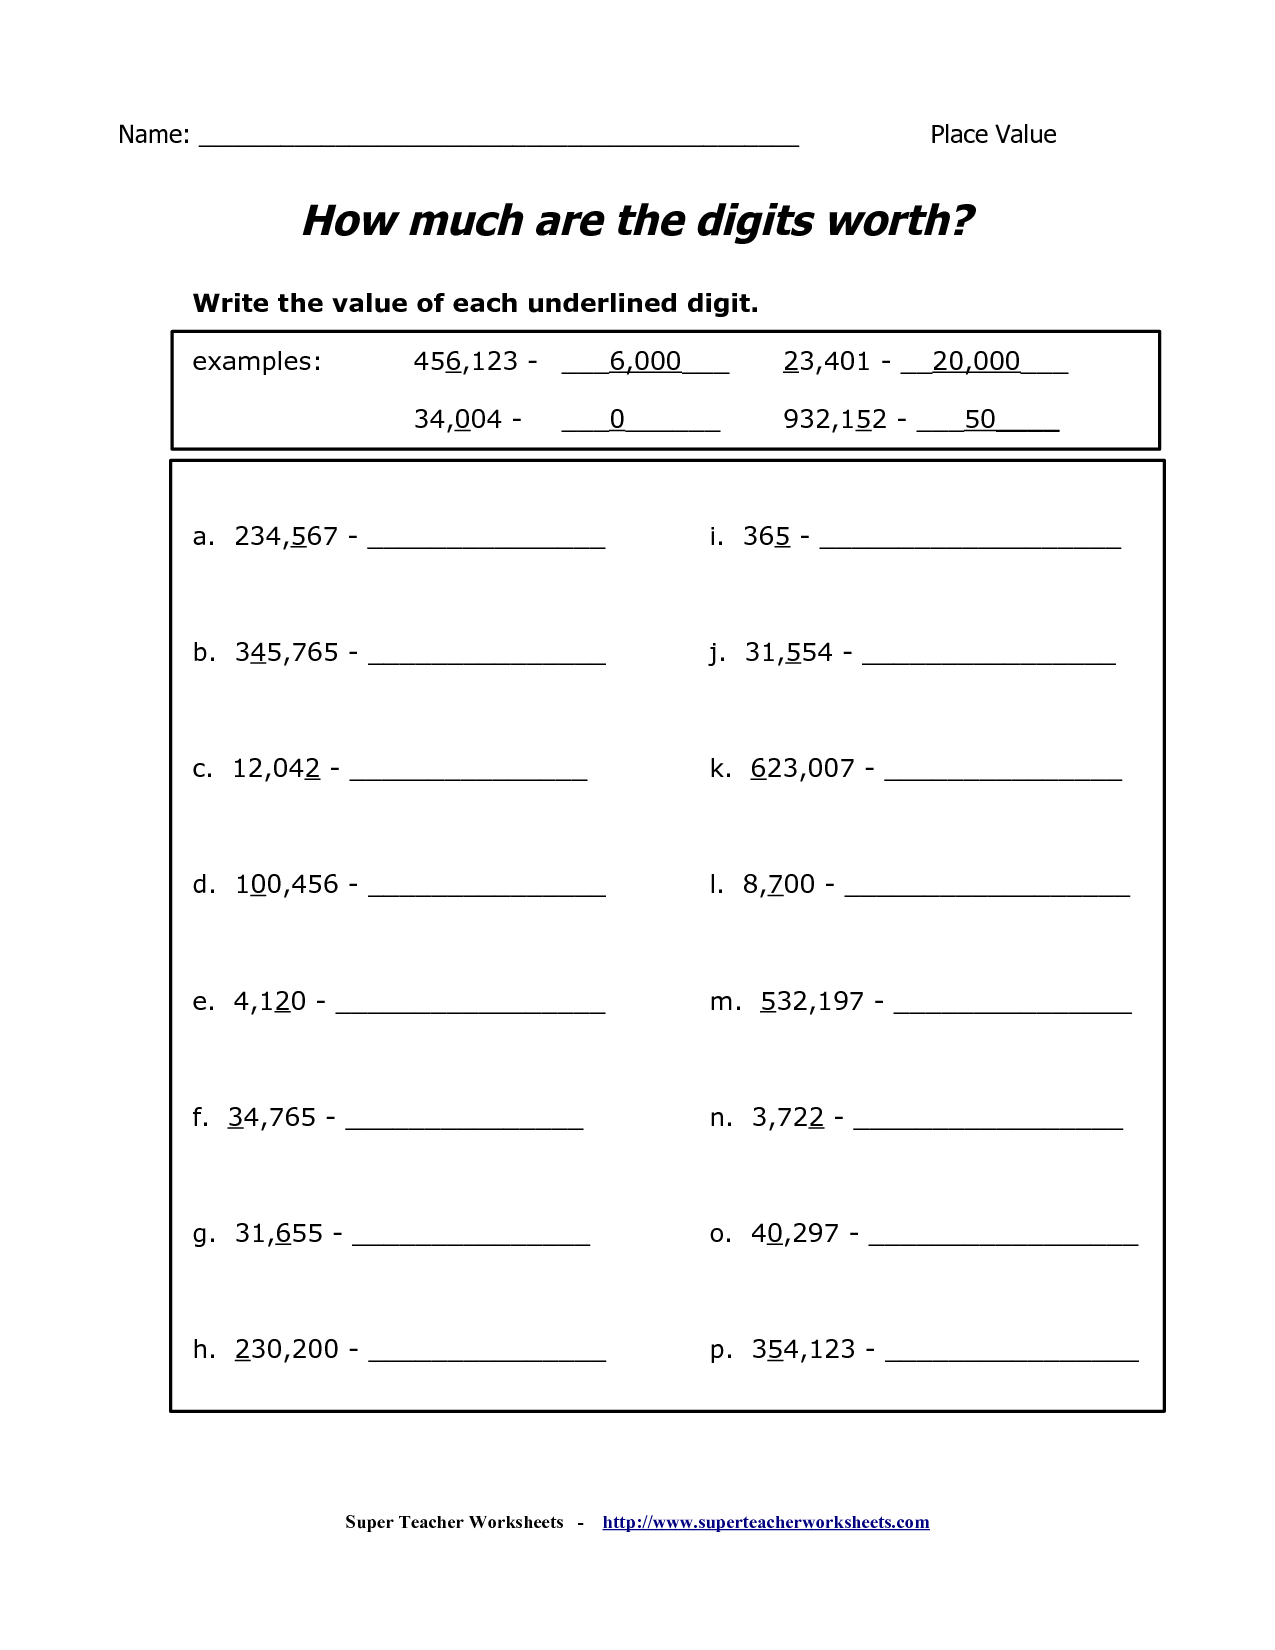 18 Best Images Of Super Teacher Worksheets 2